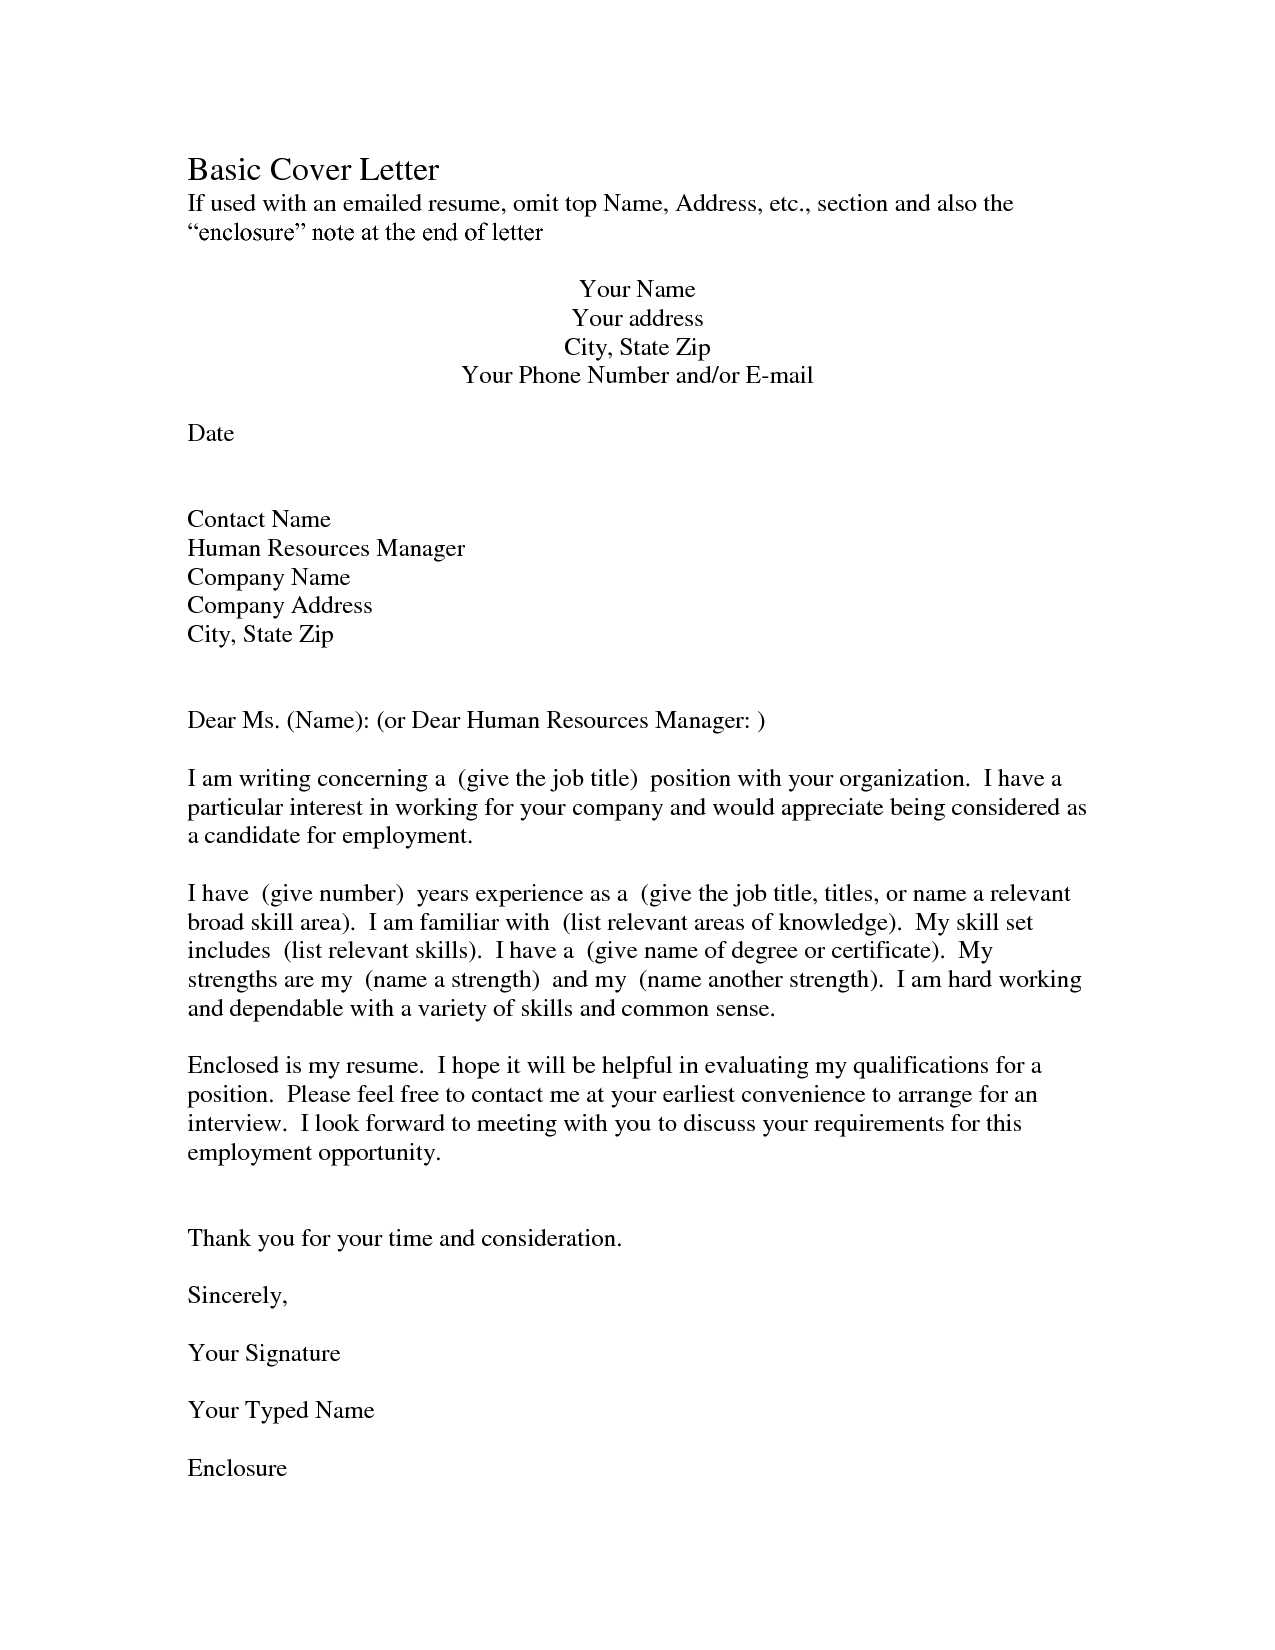 Proof Of Loss Of Coverage Letter Template - This Cover Letter Sample Shows How A Resumes for Teachers Can Help